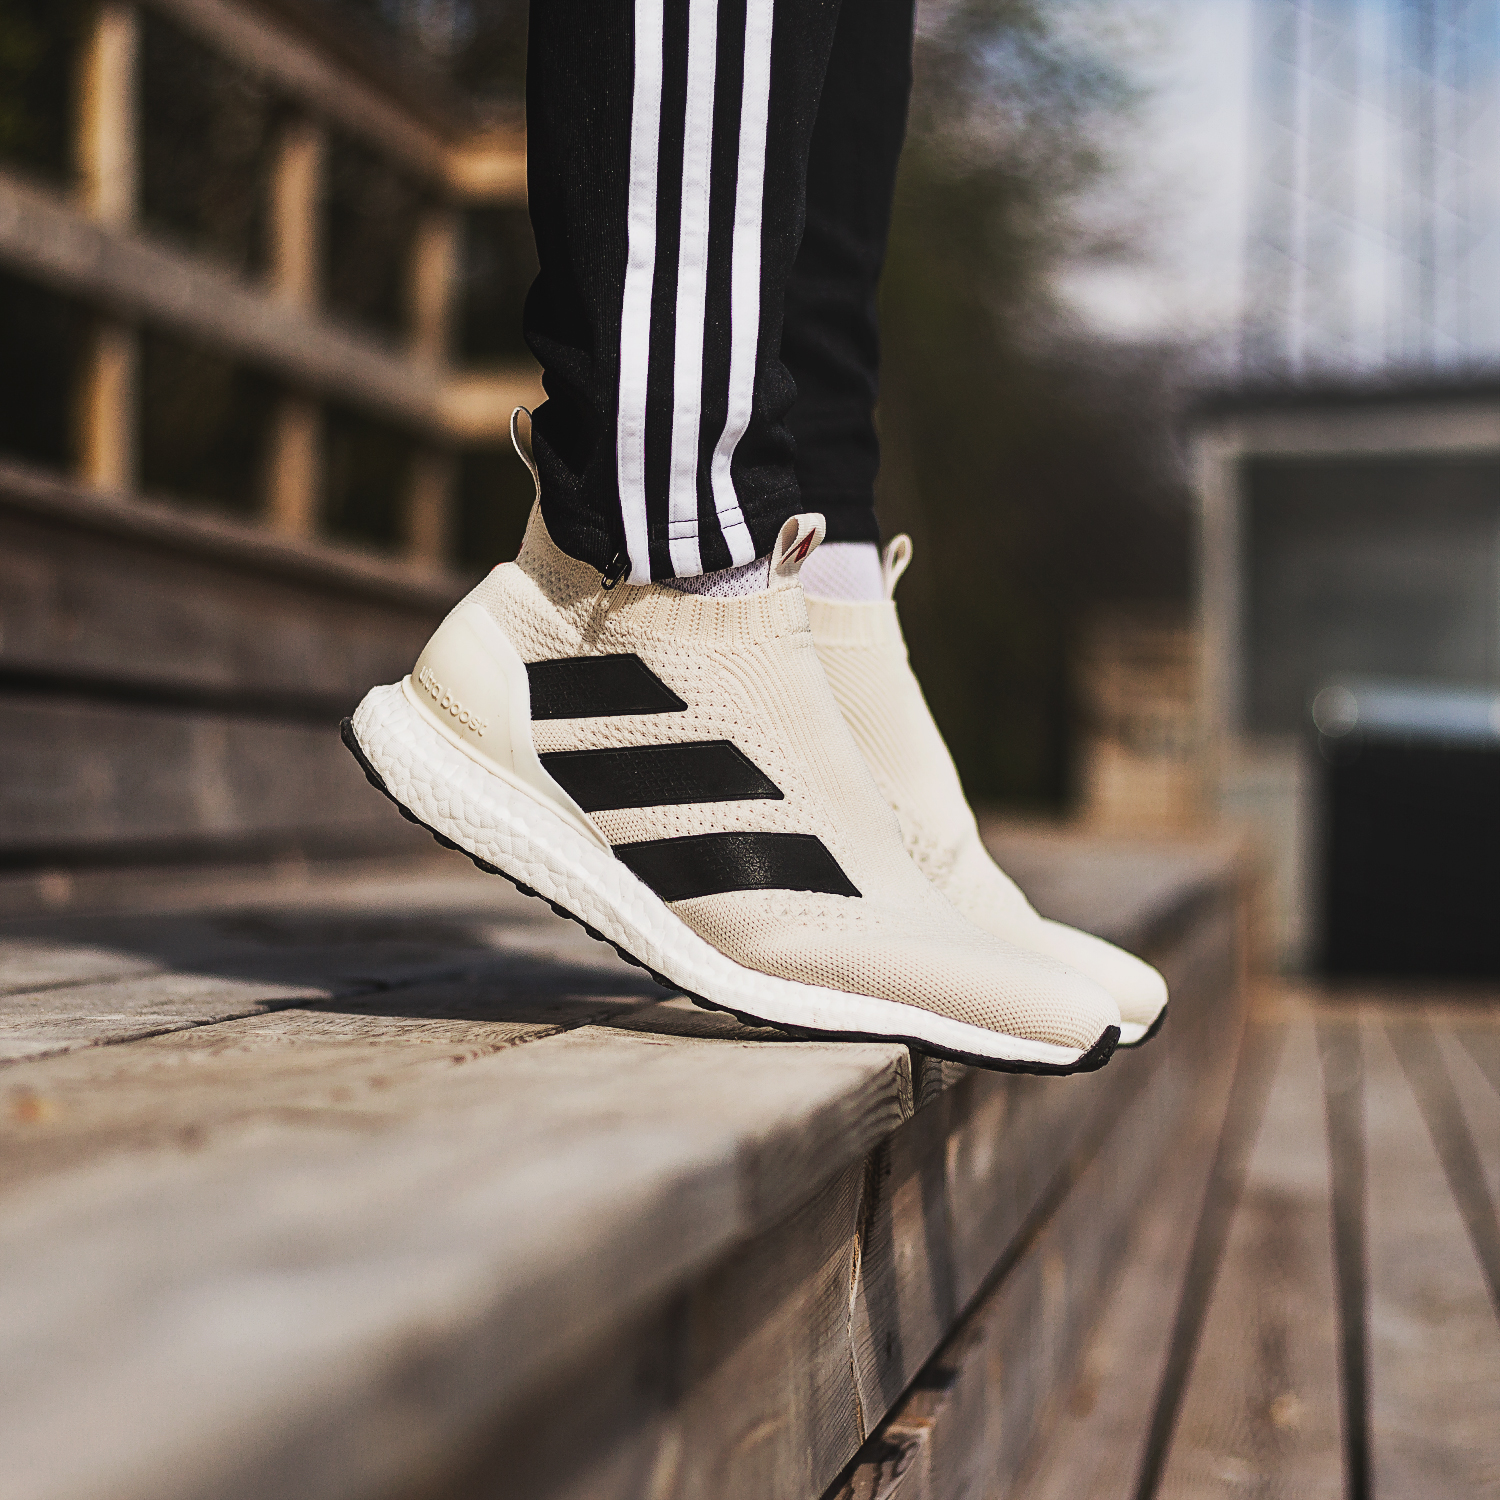 Raffle for the adidas ACE 16+ PureControl Ultra Boost